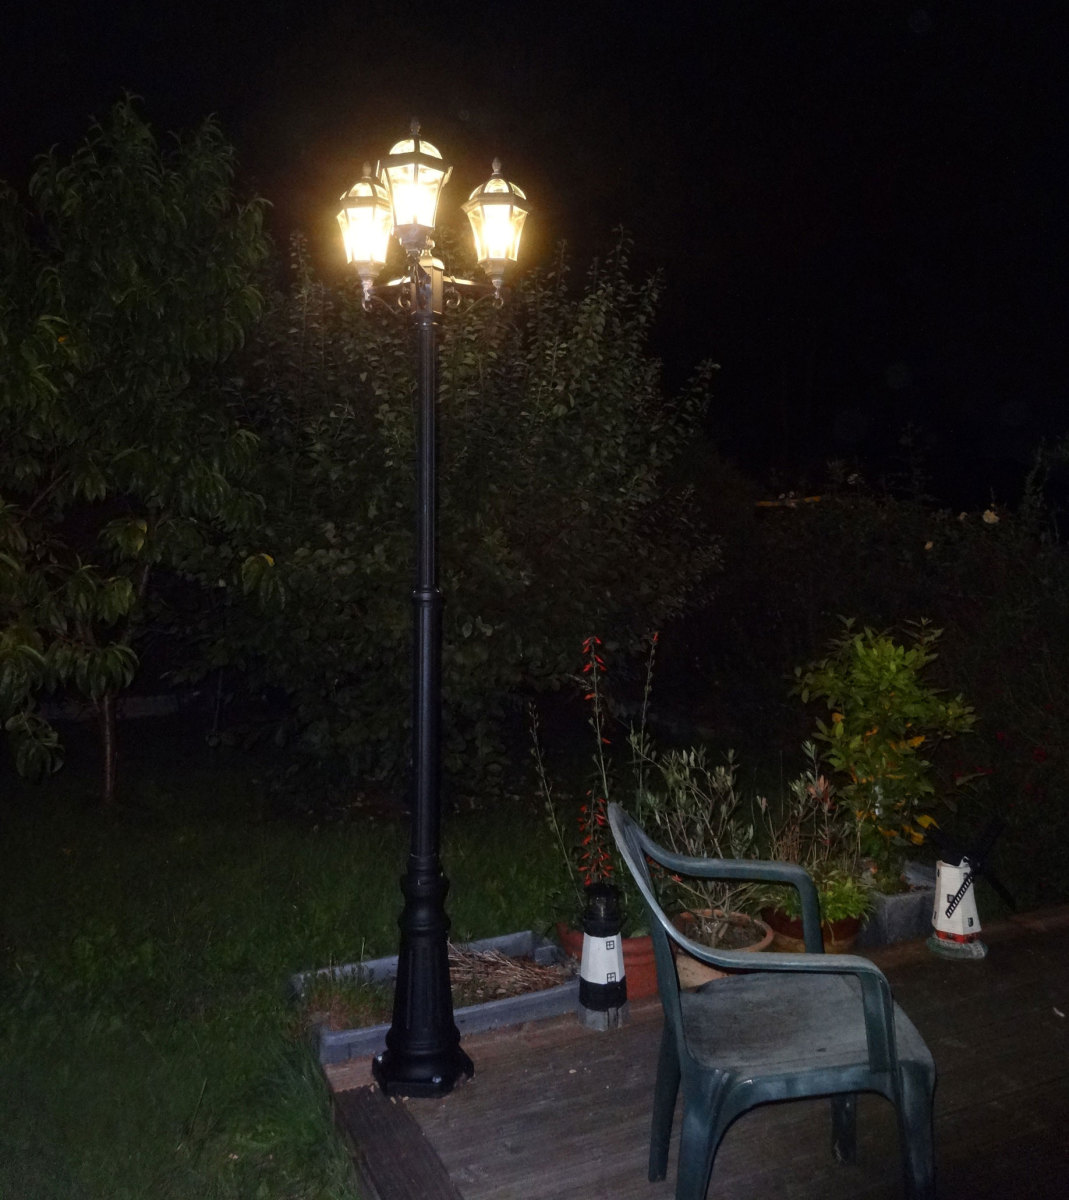 Renovating and Installing a Streetlamp in Your Garden